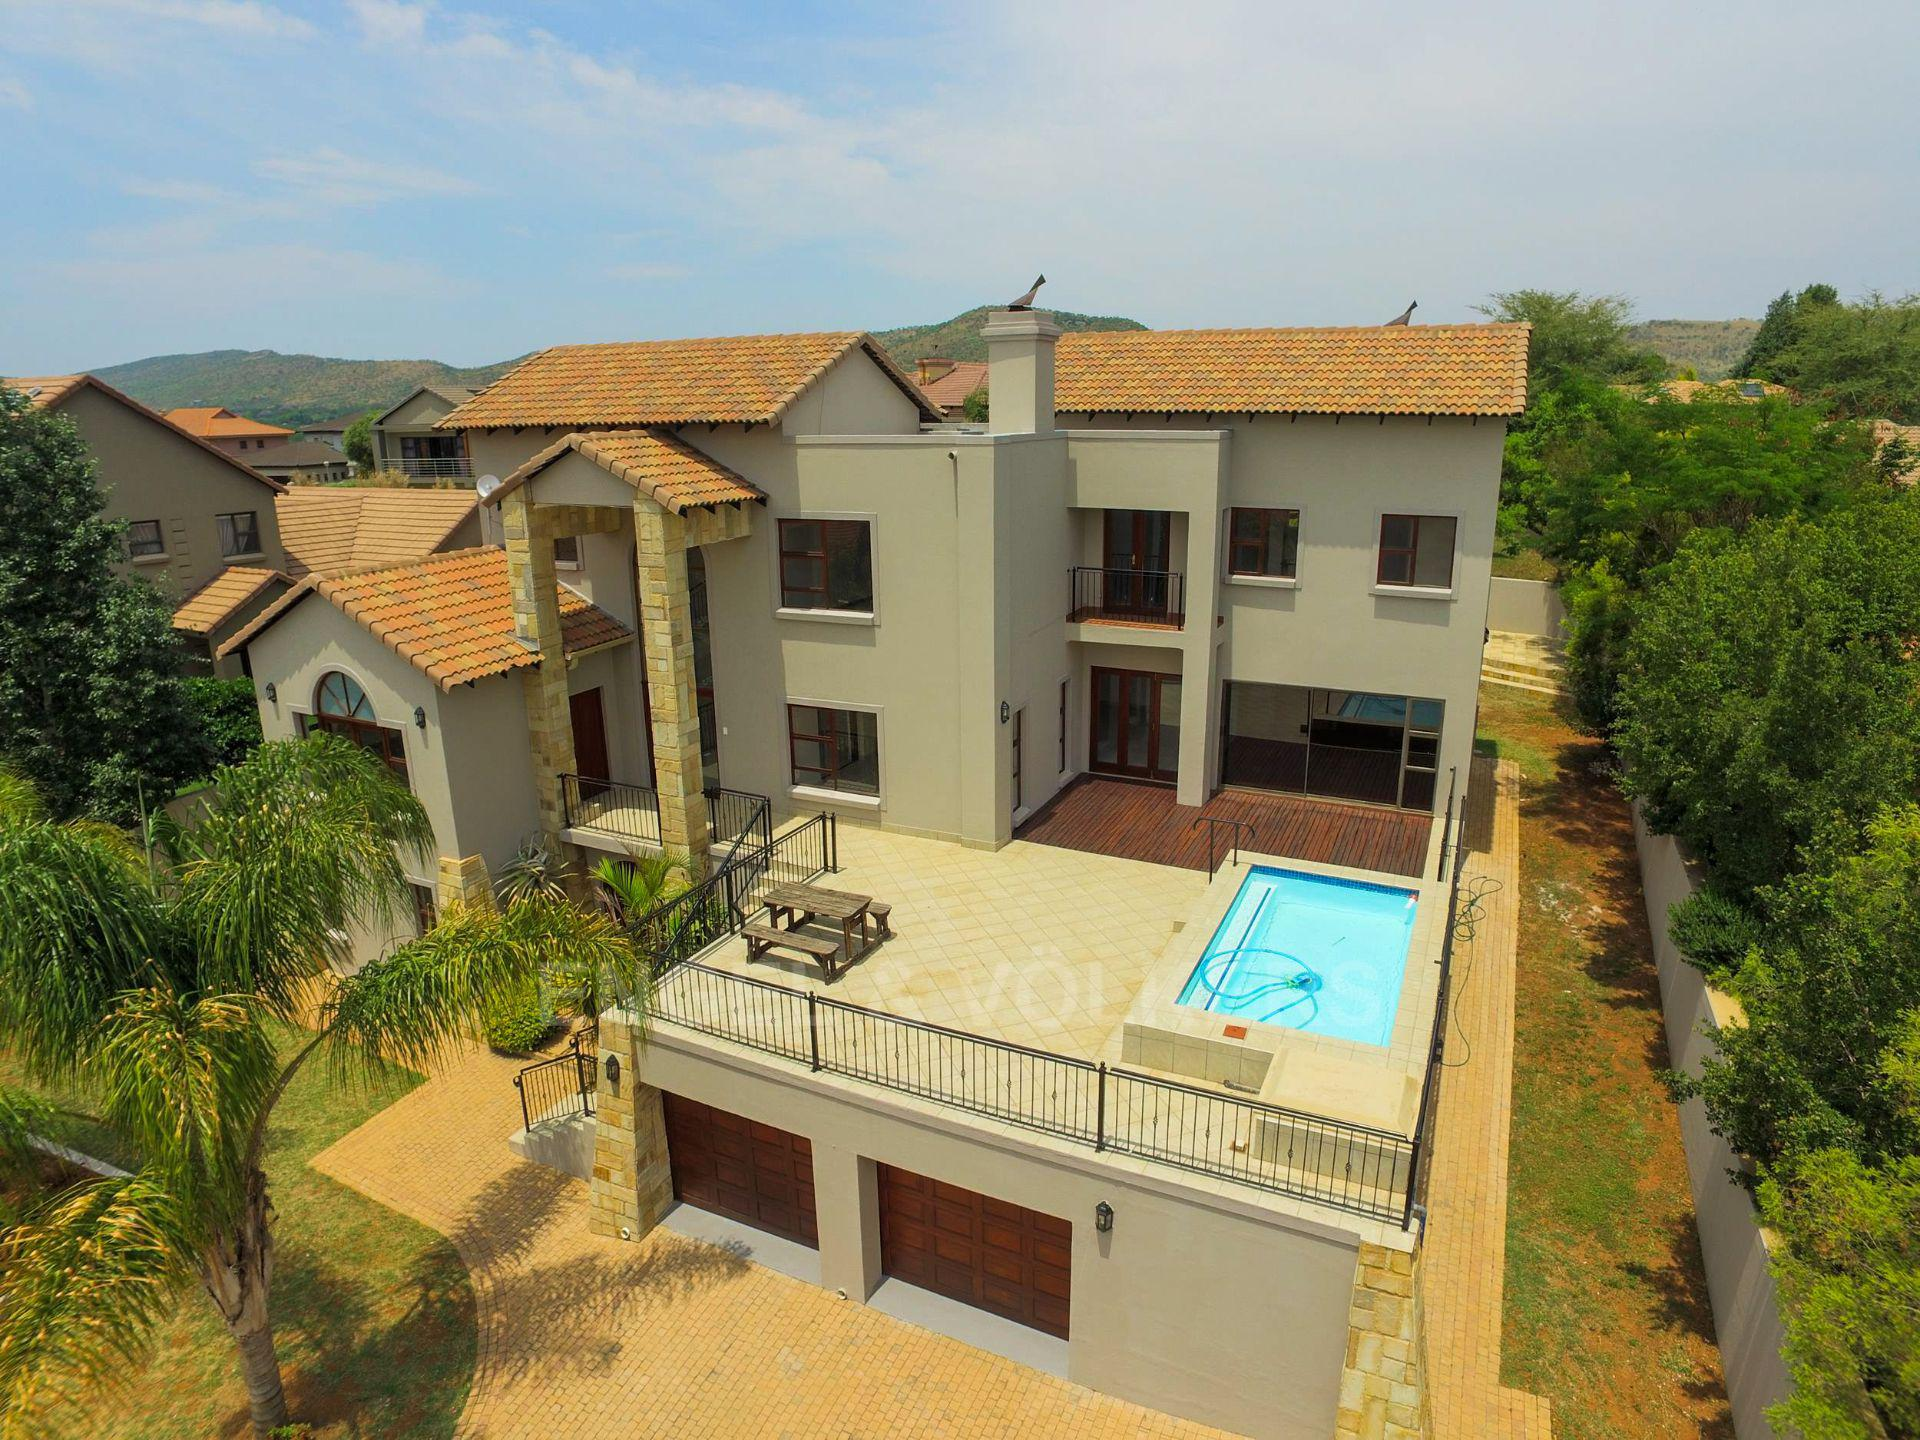 House in Xanadu Eco Park - Large home with great views